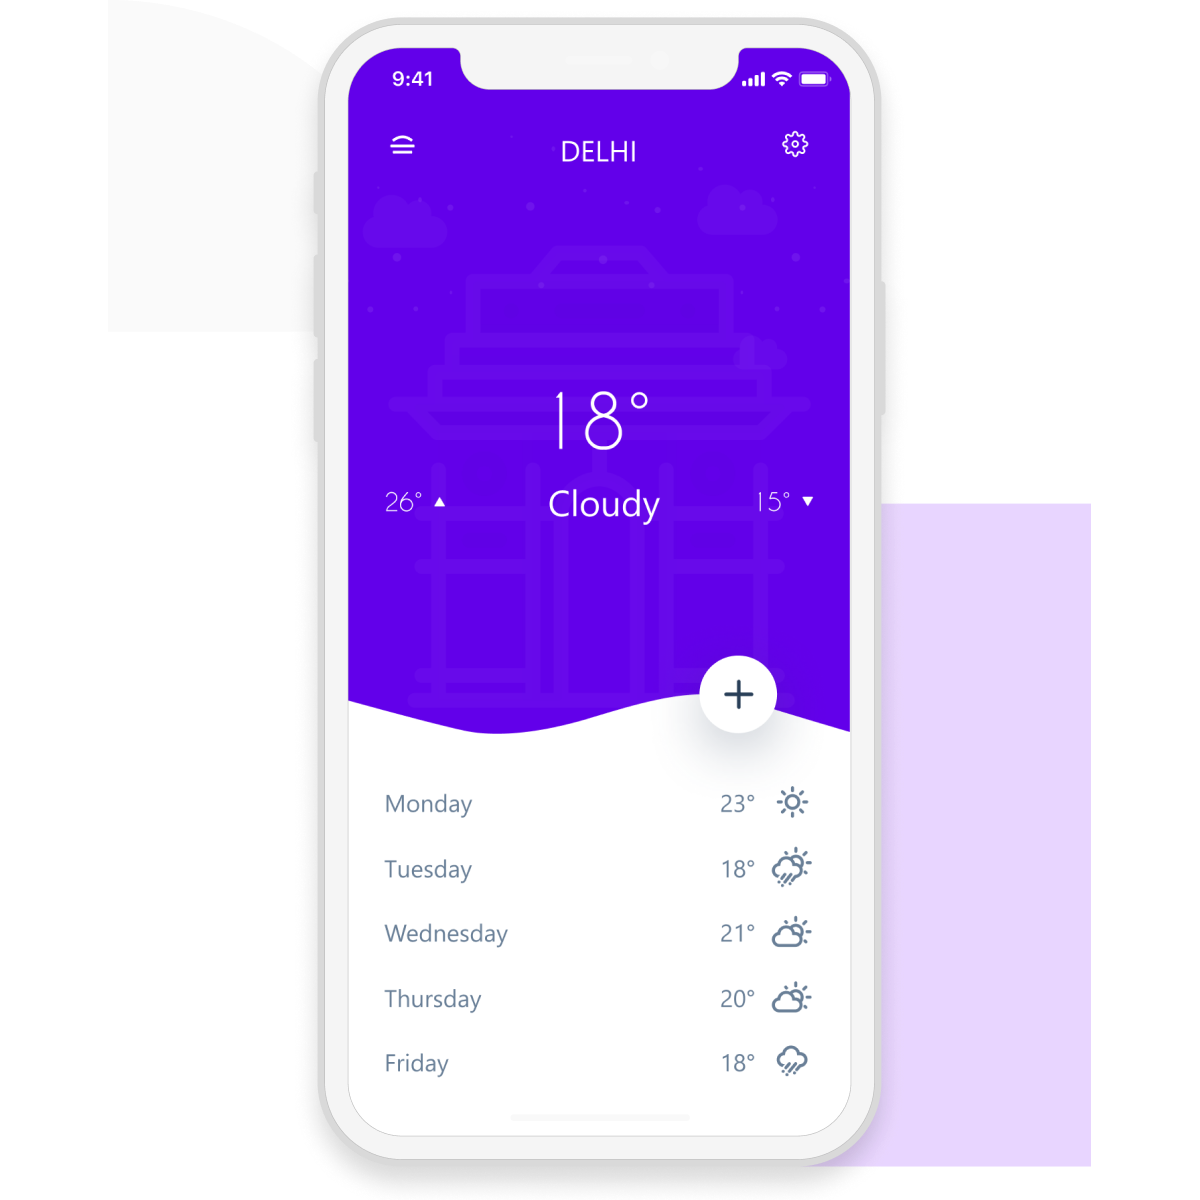 Build a weather forecasting app